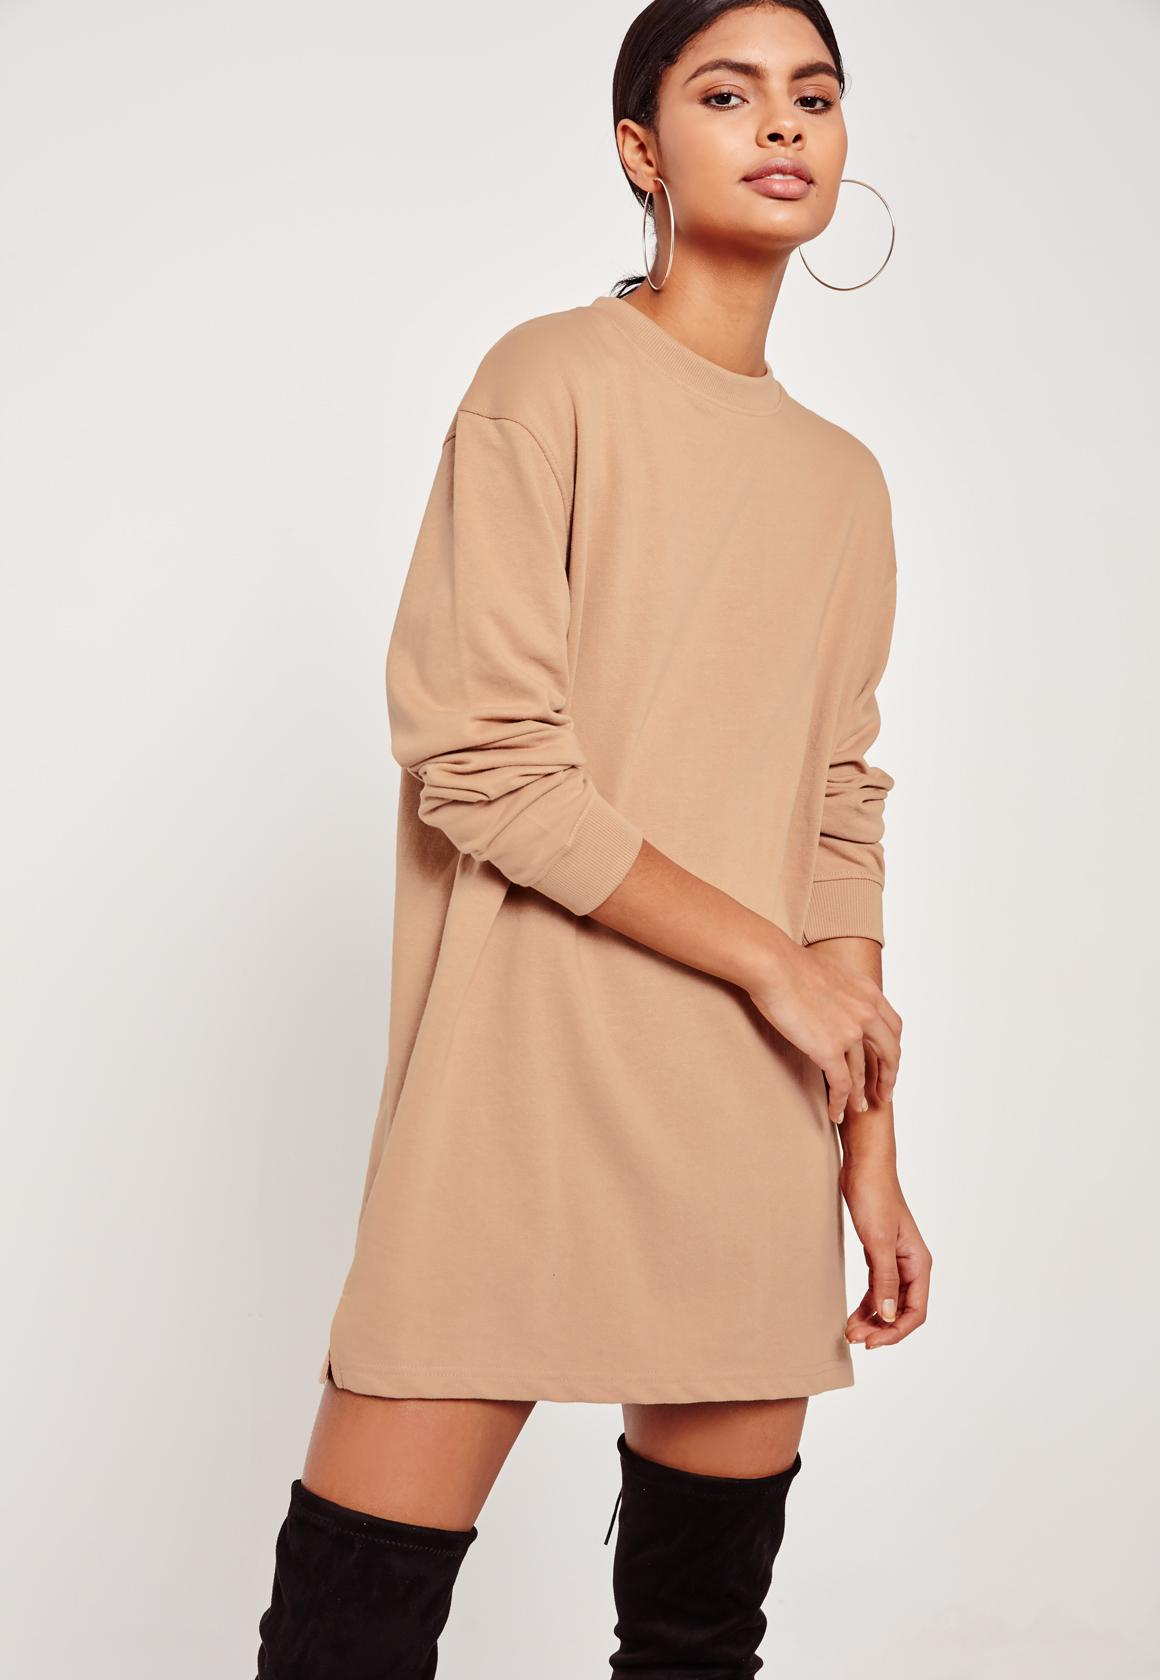 8abfb3d36b8 Missguided Nude Oversized Long Sleeve Sweater Dress in Blue - Lyst